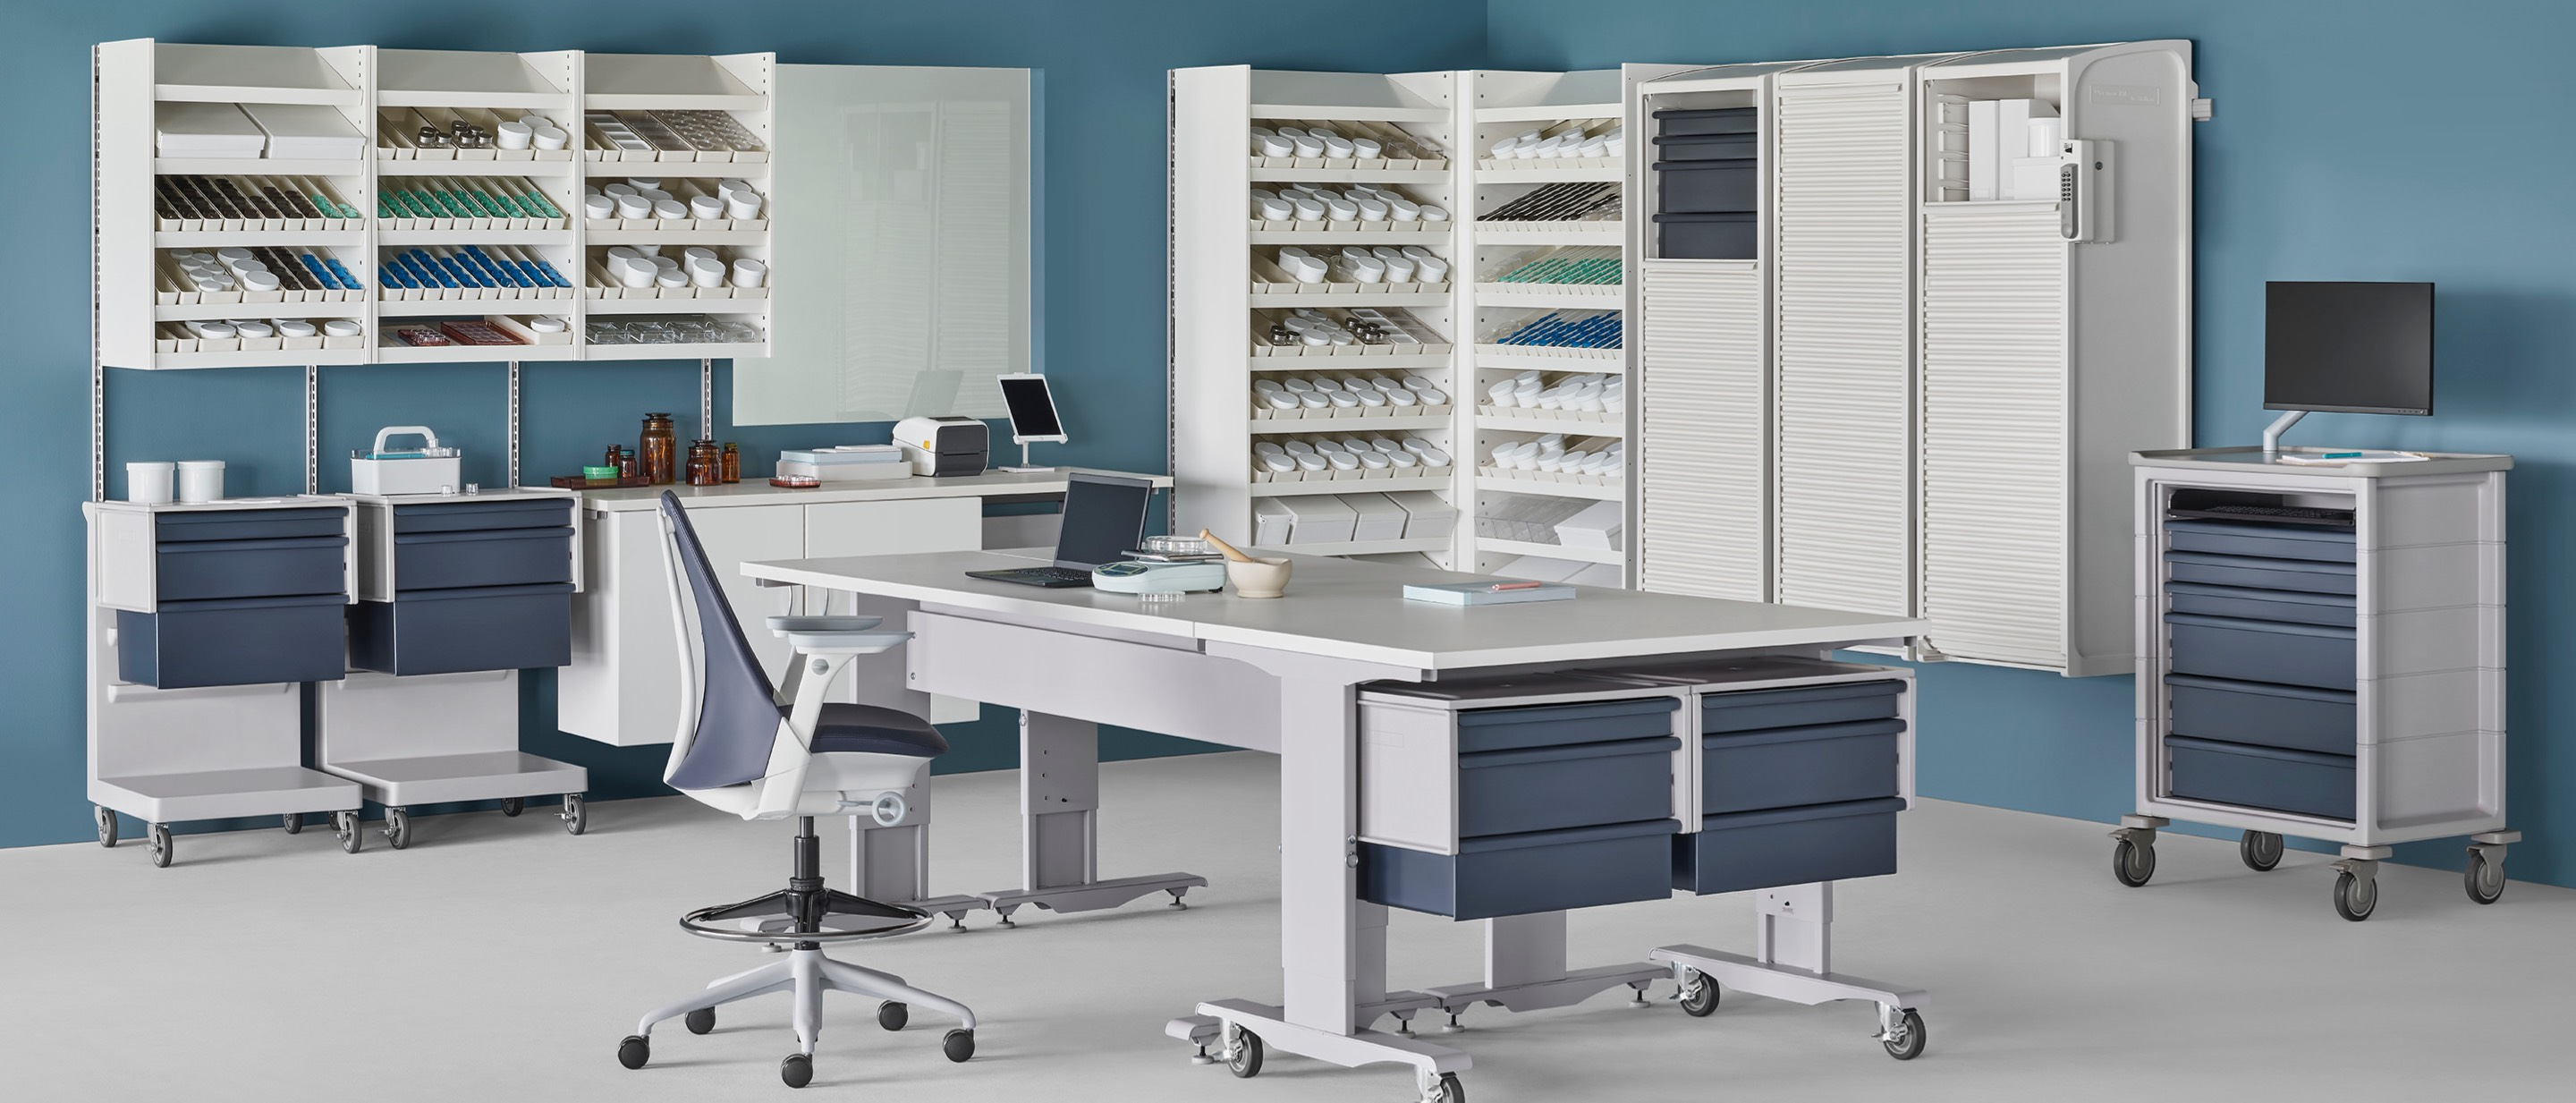 A pharmacy environment containing a Co/Struc System of dispensing shelves, lockers, process tables, L Carts with blue drawers, a technology cart with blue drawers, and a Sayl Stool.